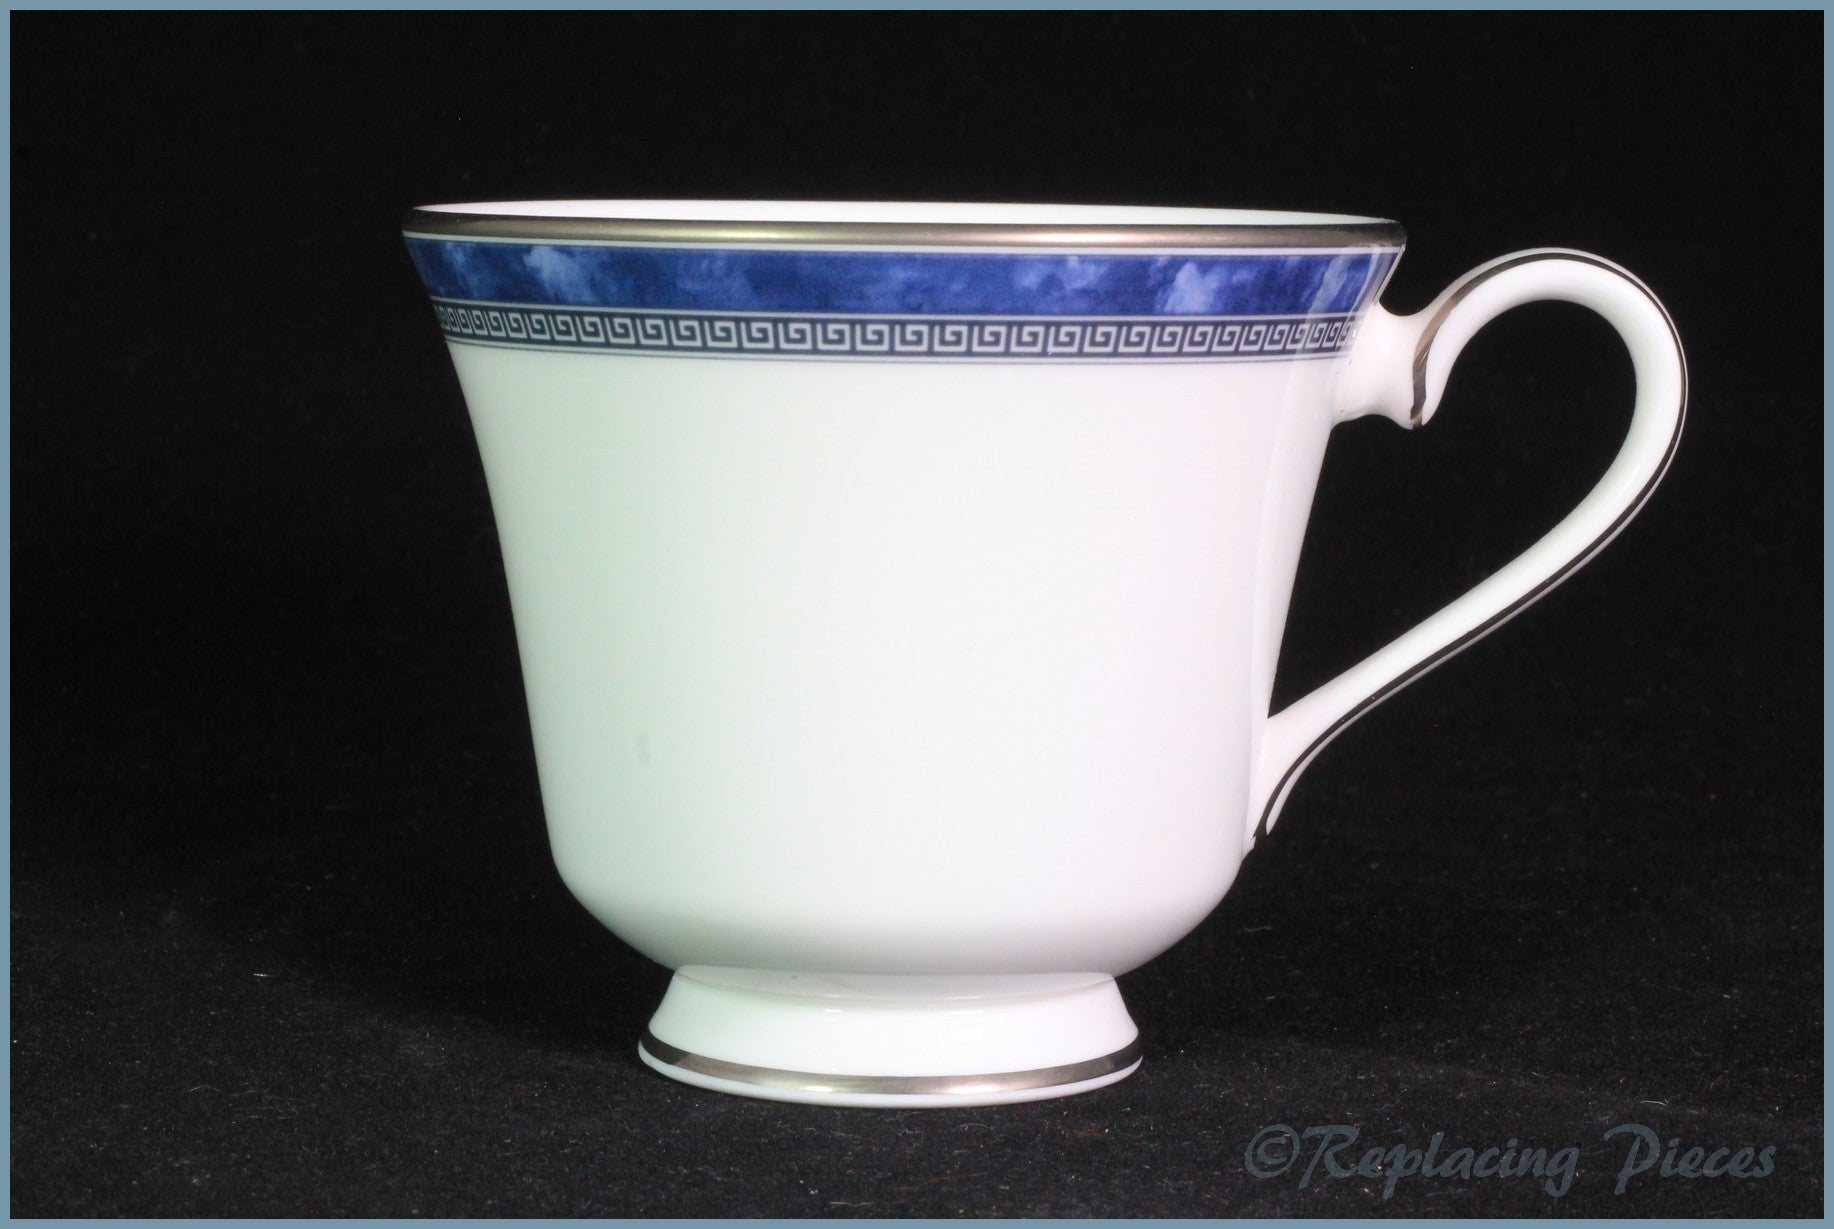 Royal Doulton - Atlanta (H5237) - Teacup